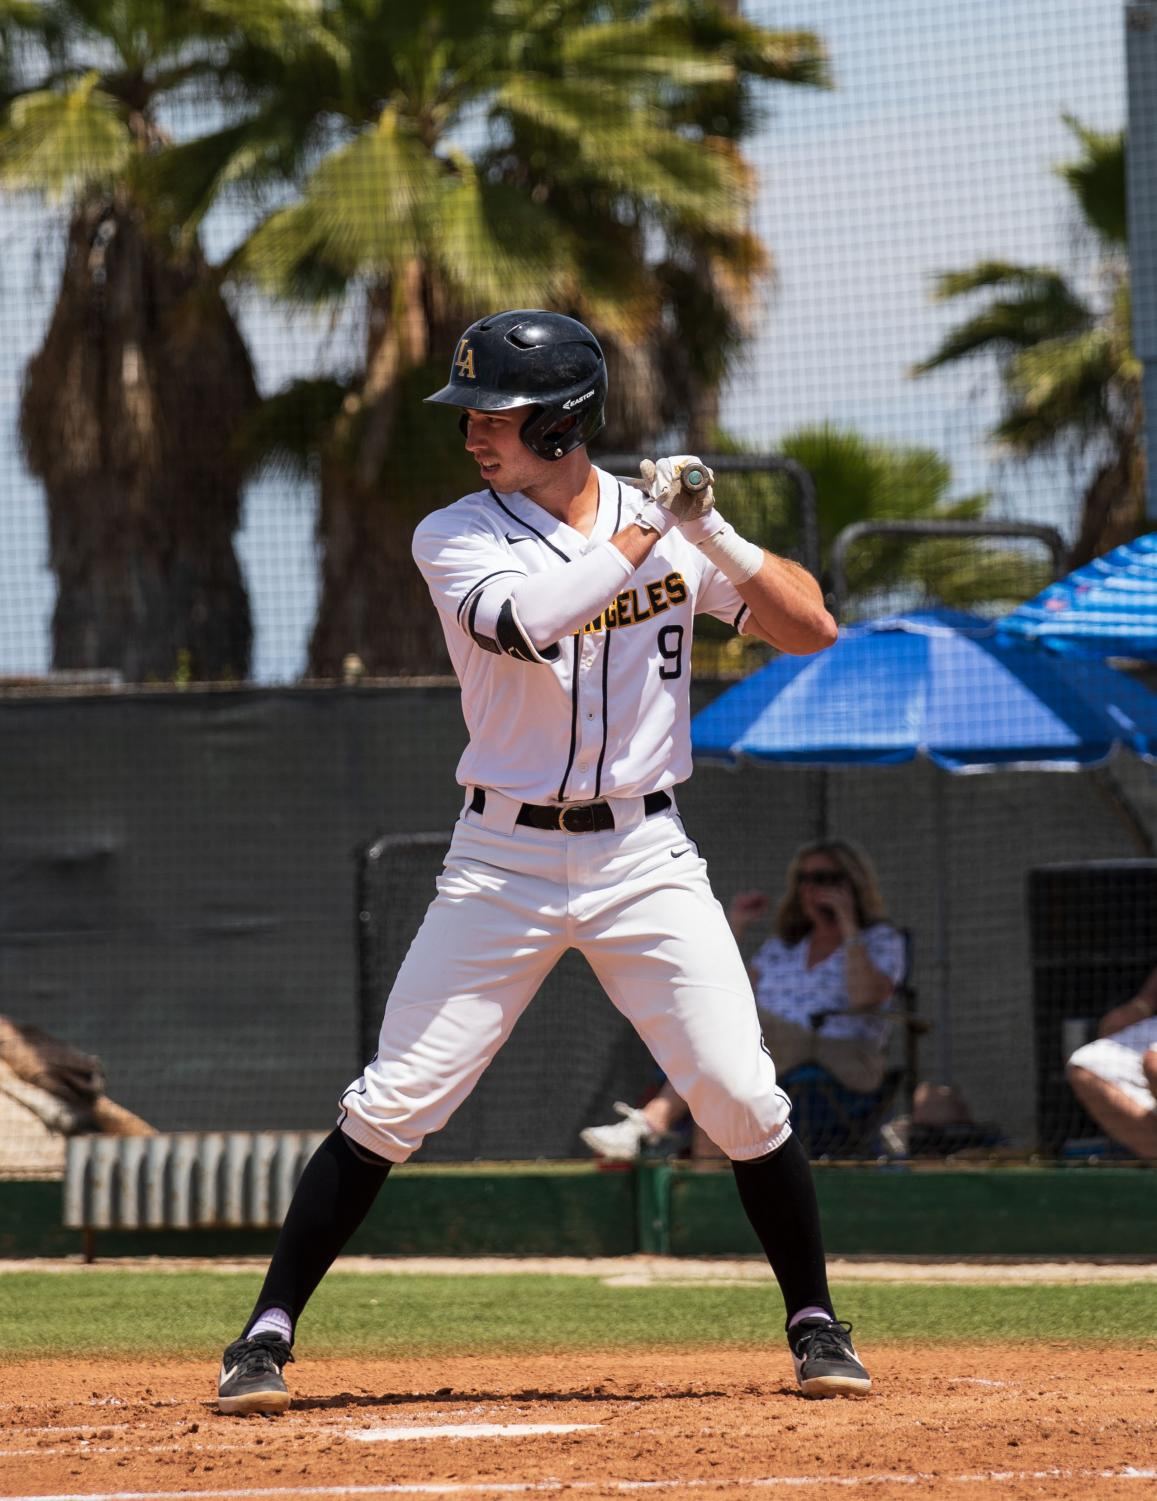 Golden Eagles' team captain, Spencer Sundahl (9), takes his at-bat against the San Marcos Cougars.